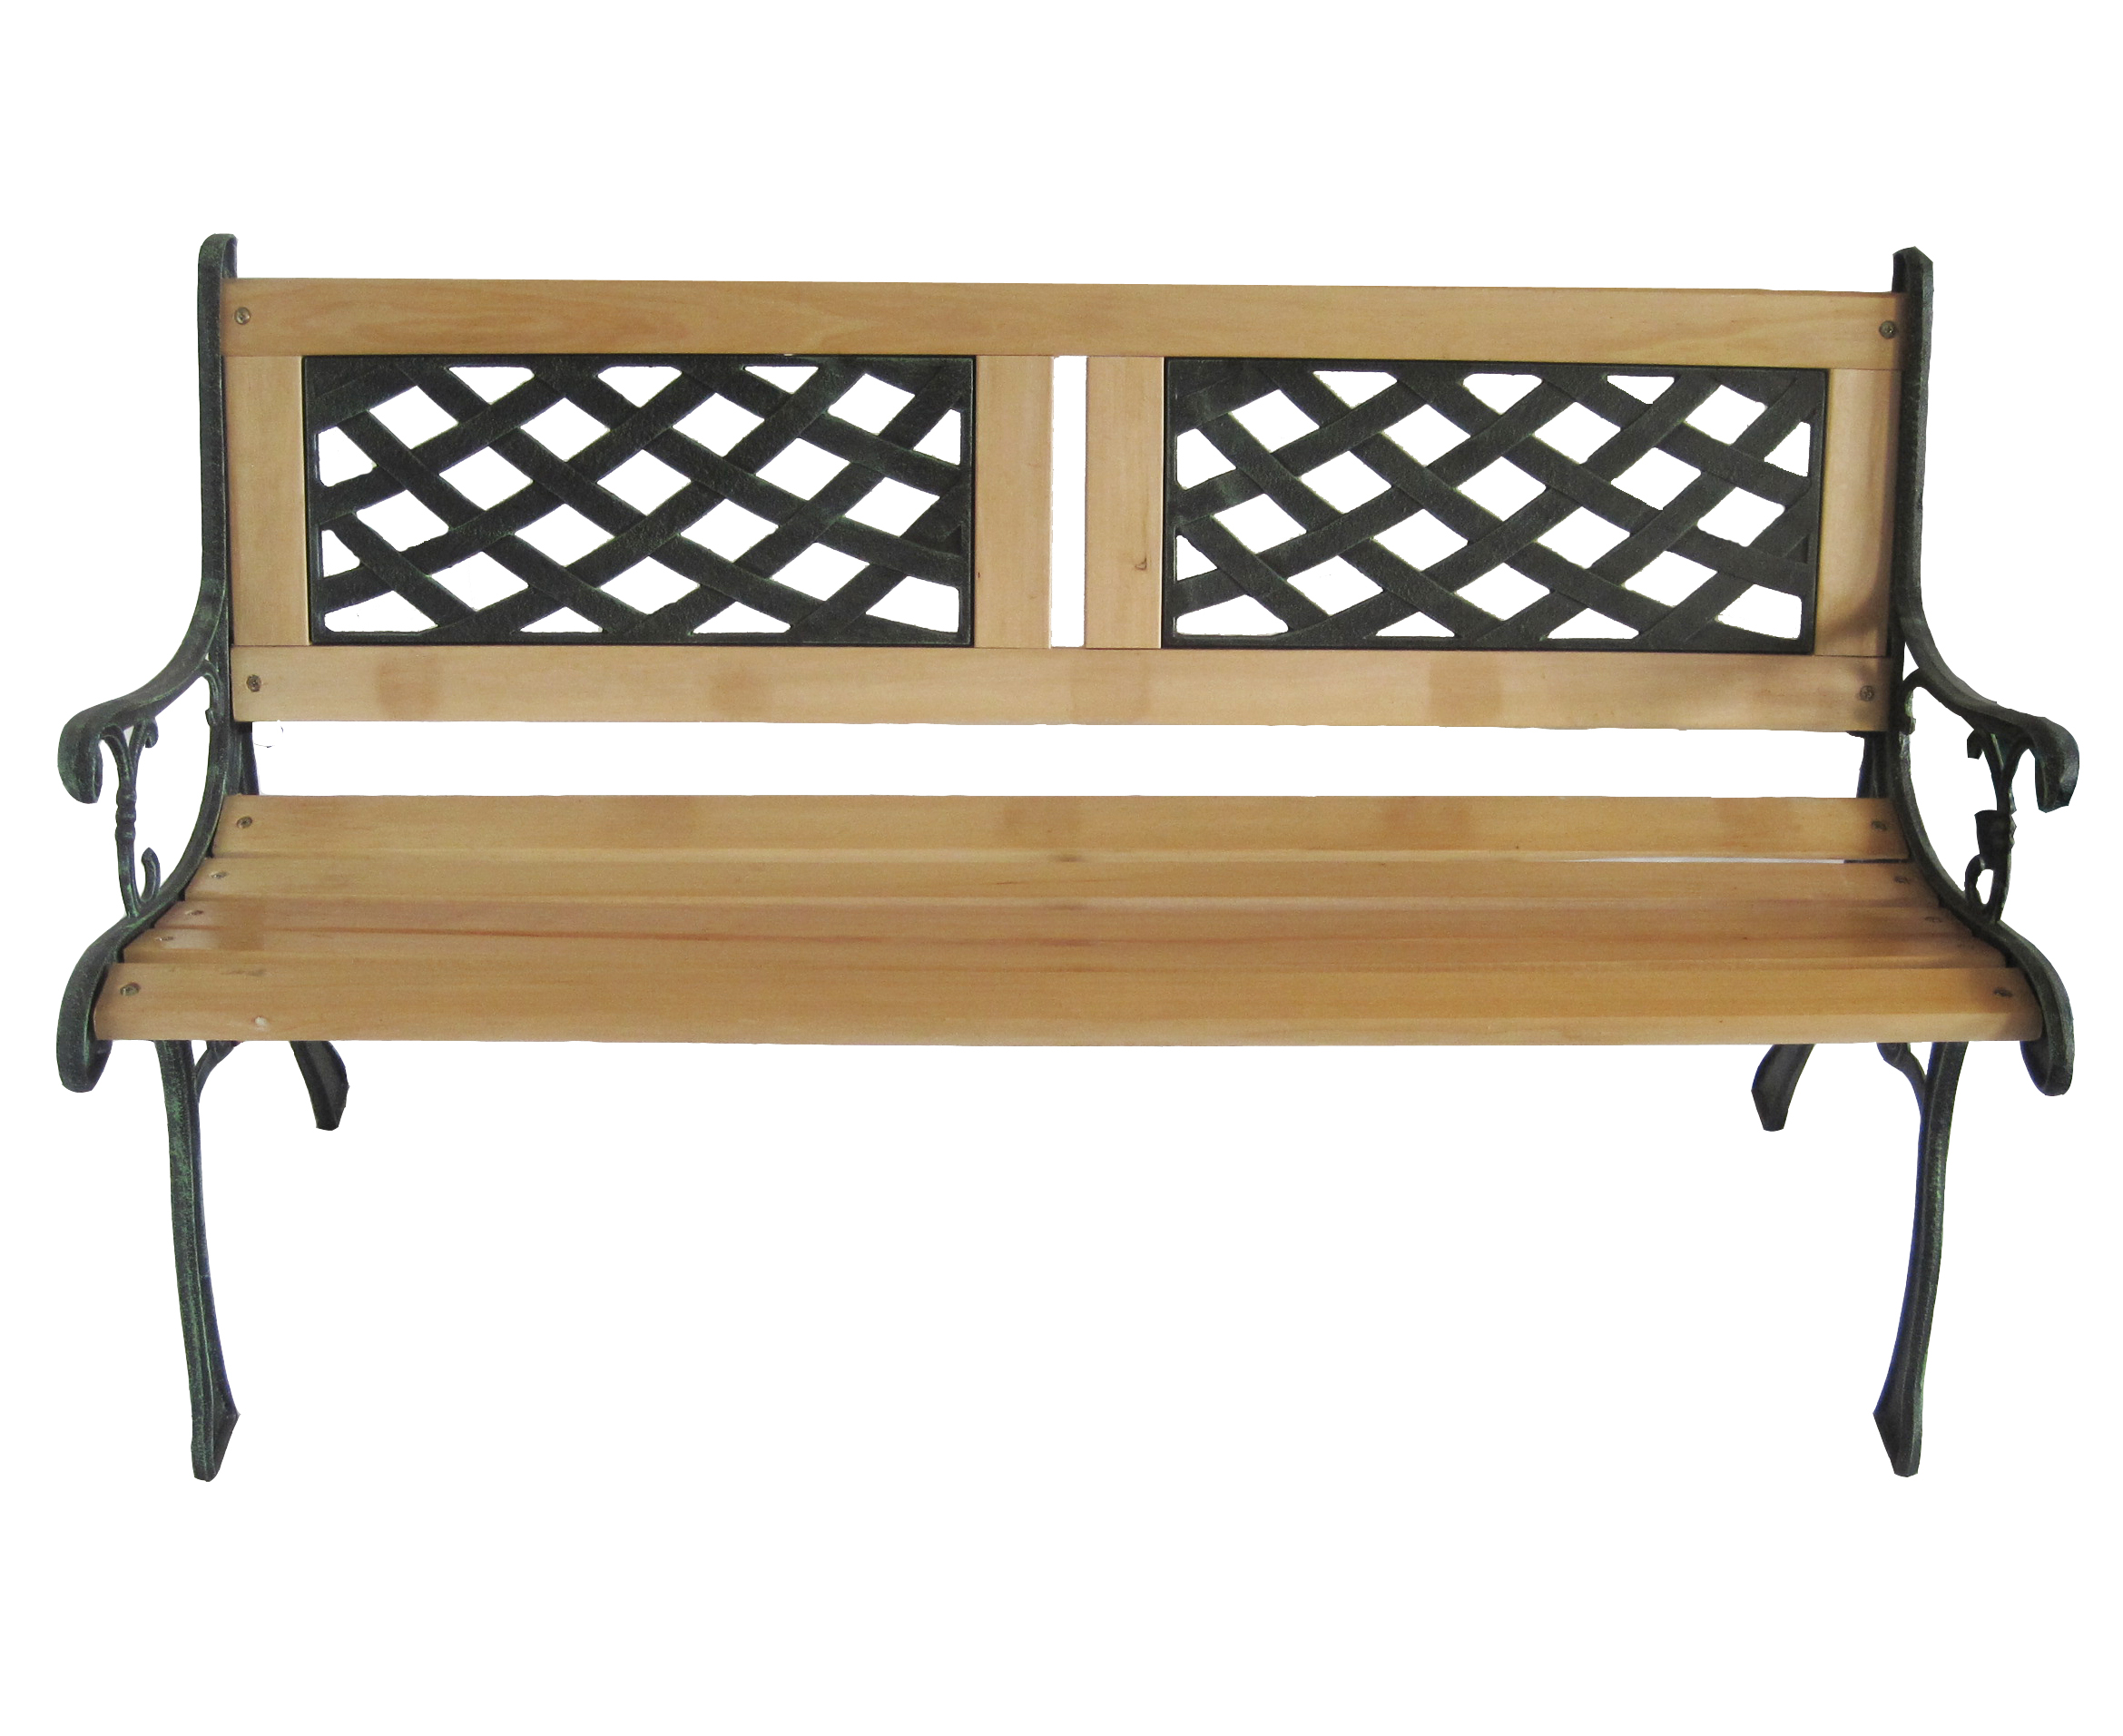 New 3 seater outdoor home wooden garden bench with cast for Outdoor furniture 3 seater